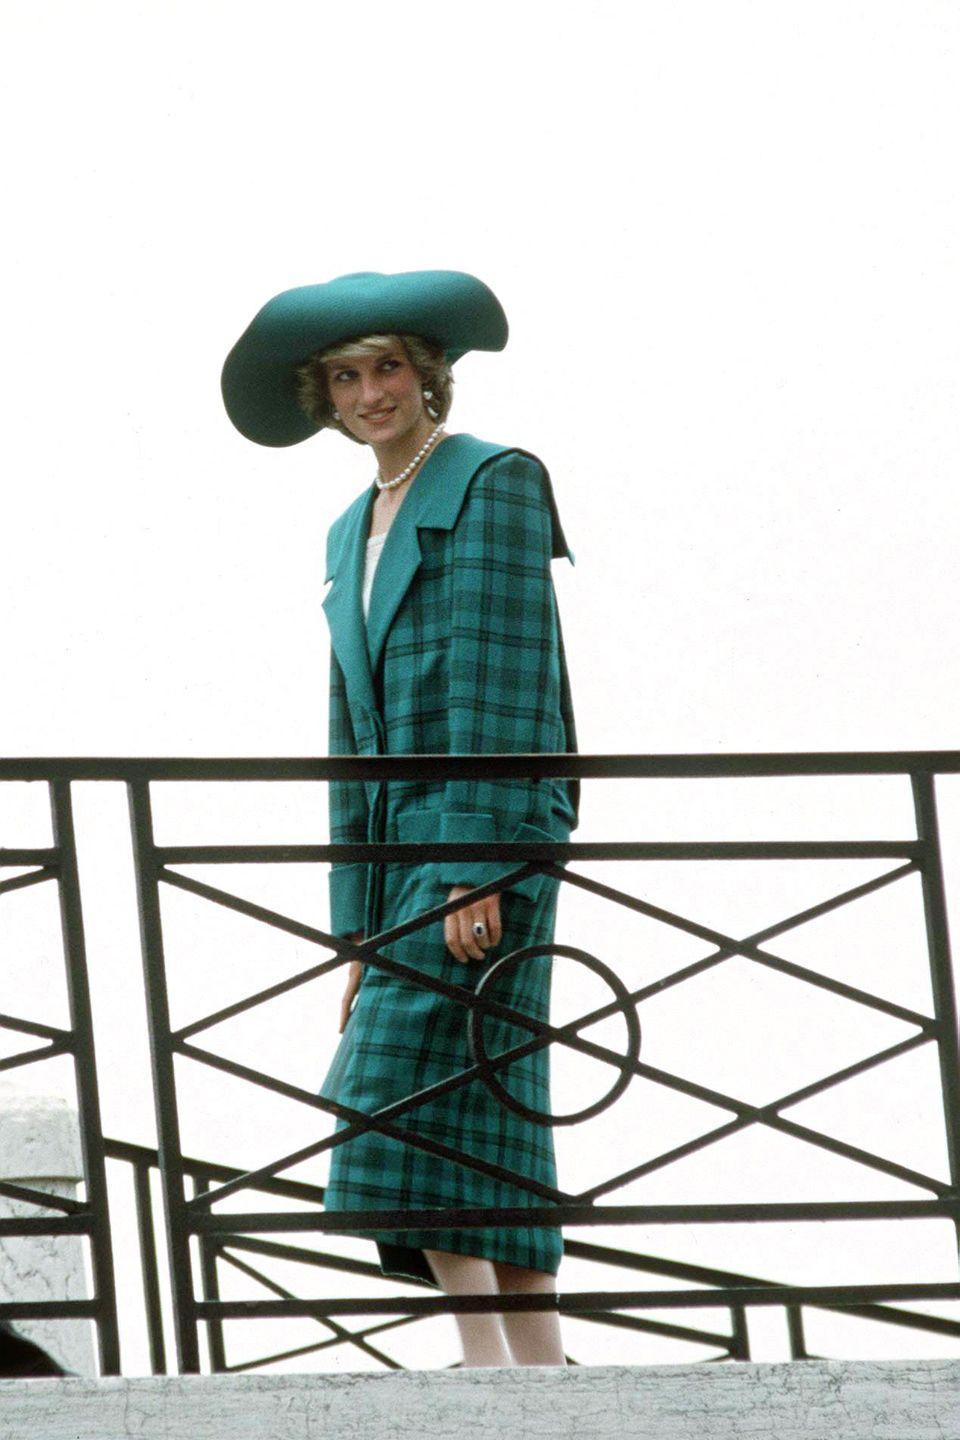 <p>While most royals stuck to the traditional tartans, Diana rocked plaid in every color imaginable in true 80s style.</p>